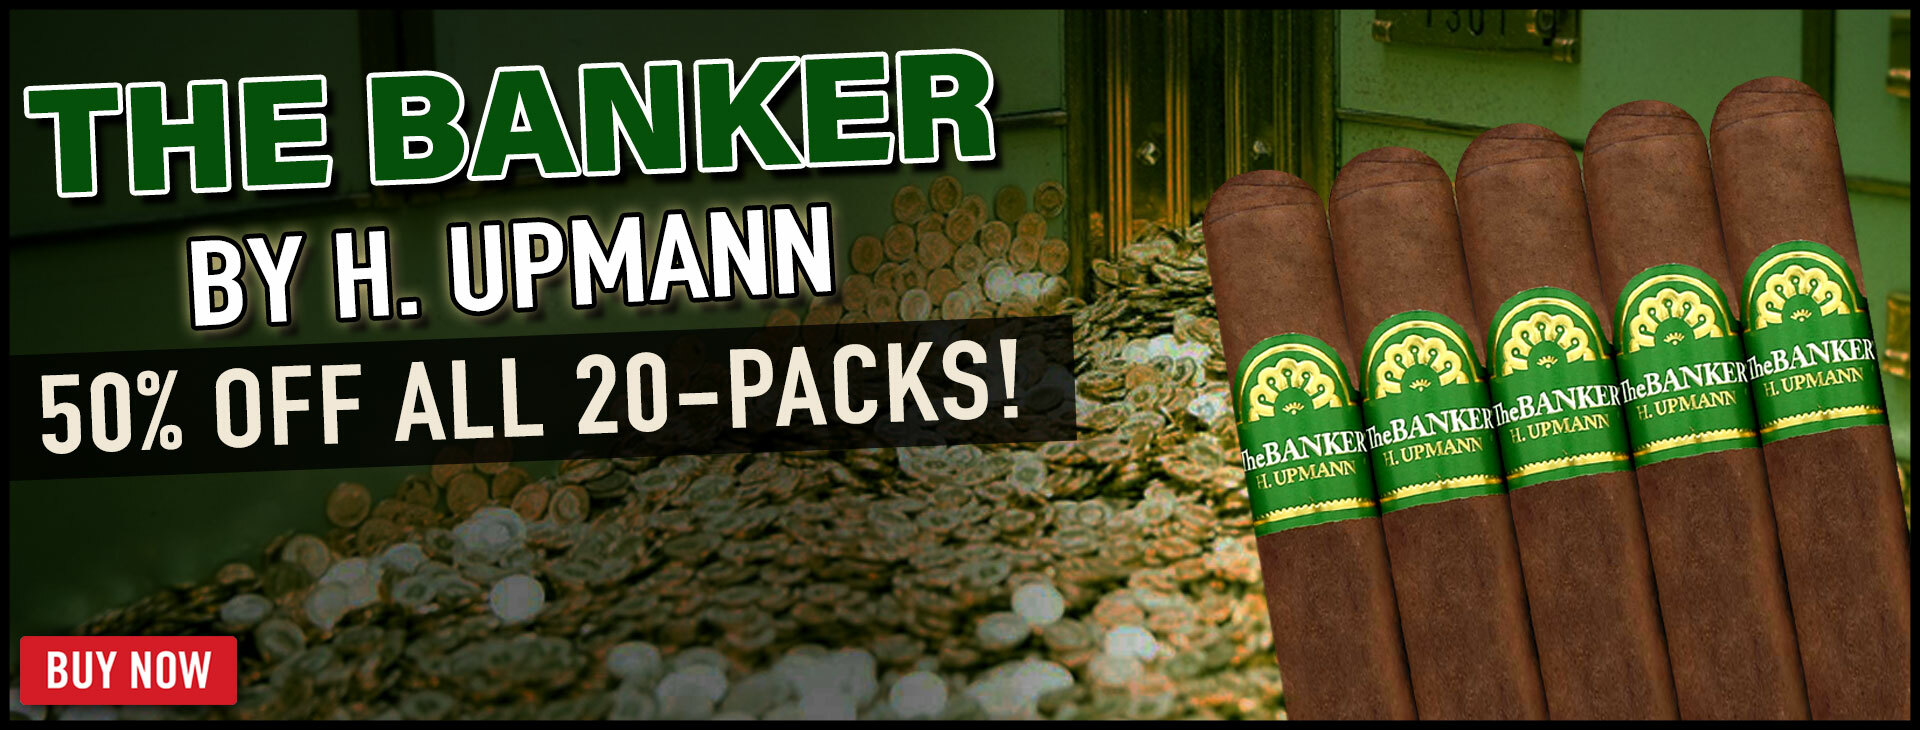 50% Off Banker By H. Upmann